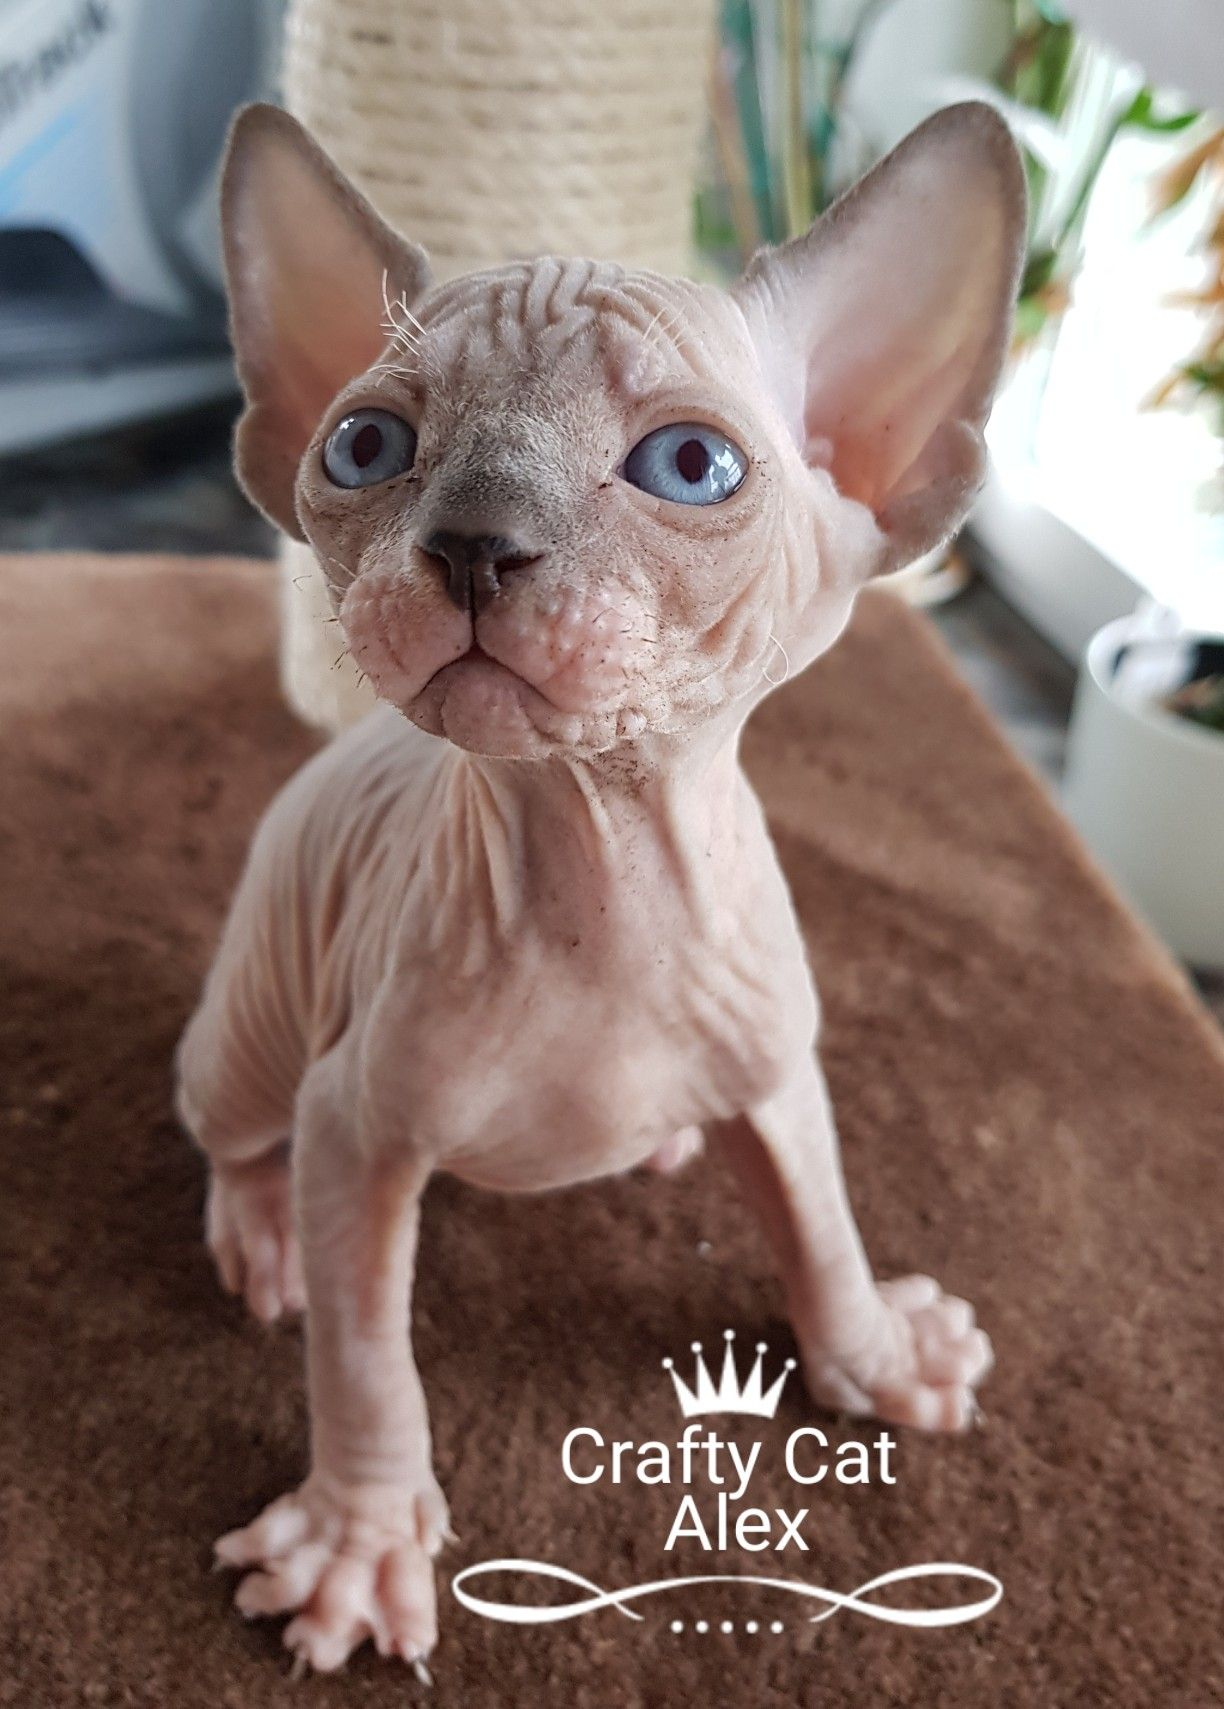 Pin by Crafty Cats Szfinx/Sphynx on Crafty Cats Sphynx